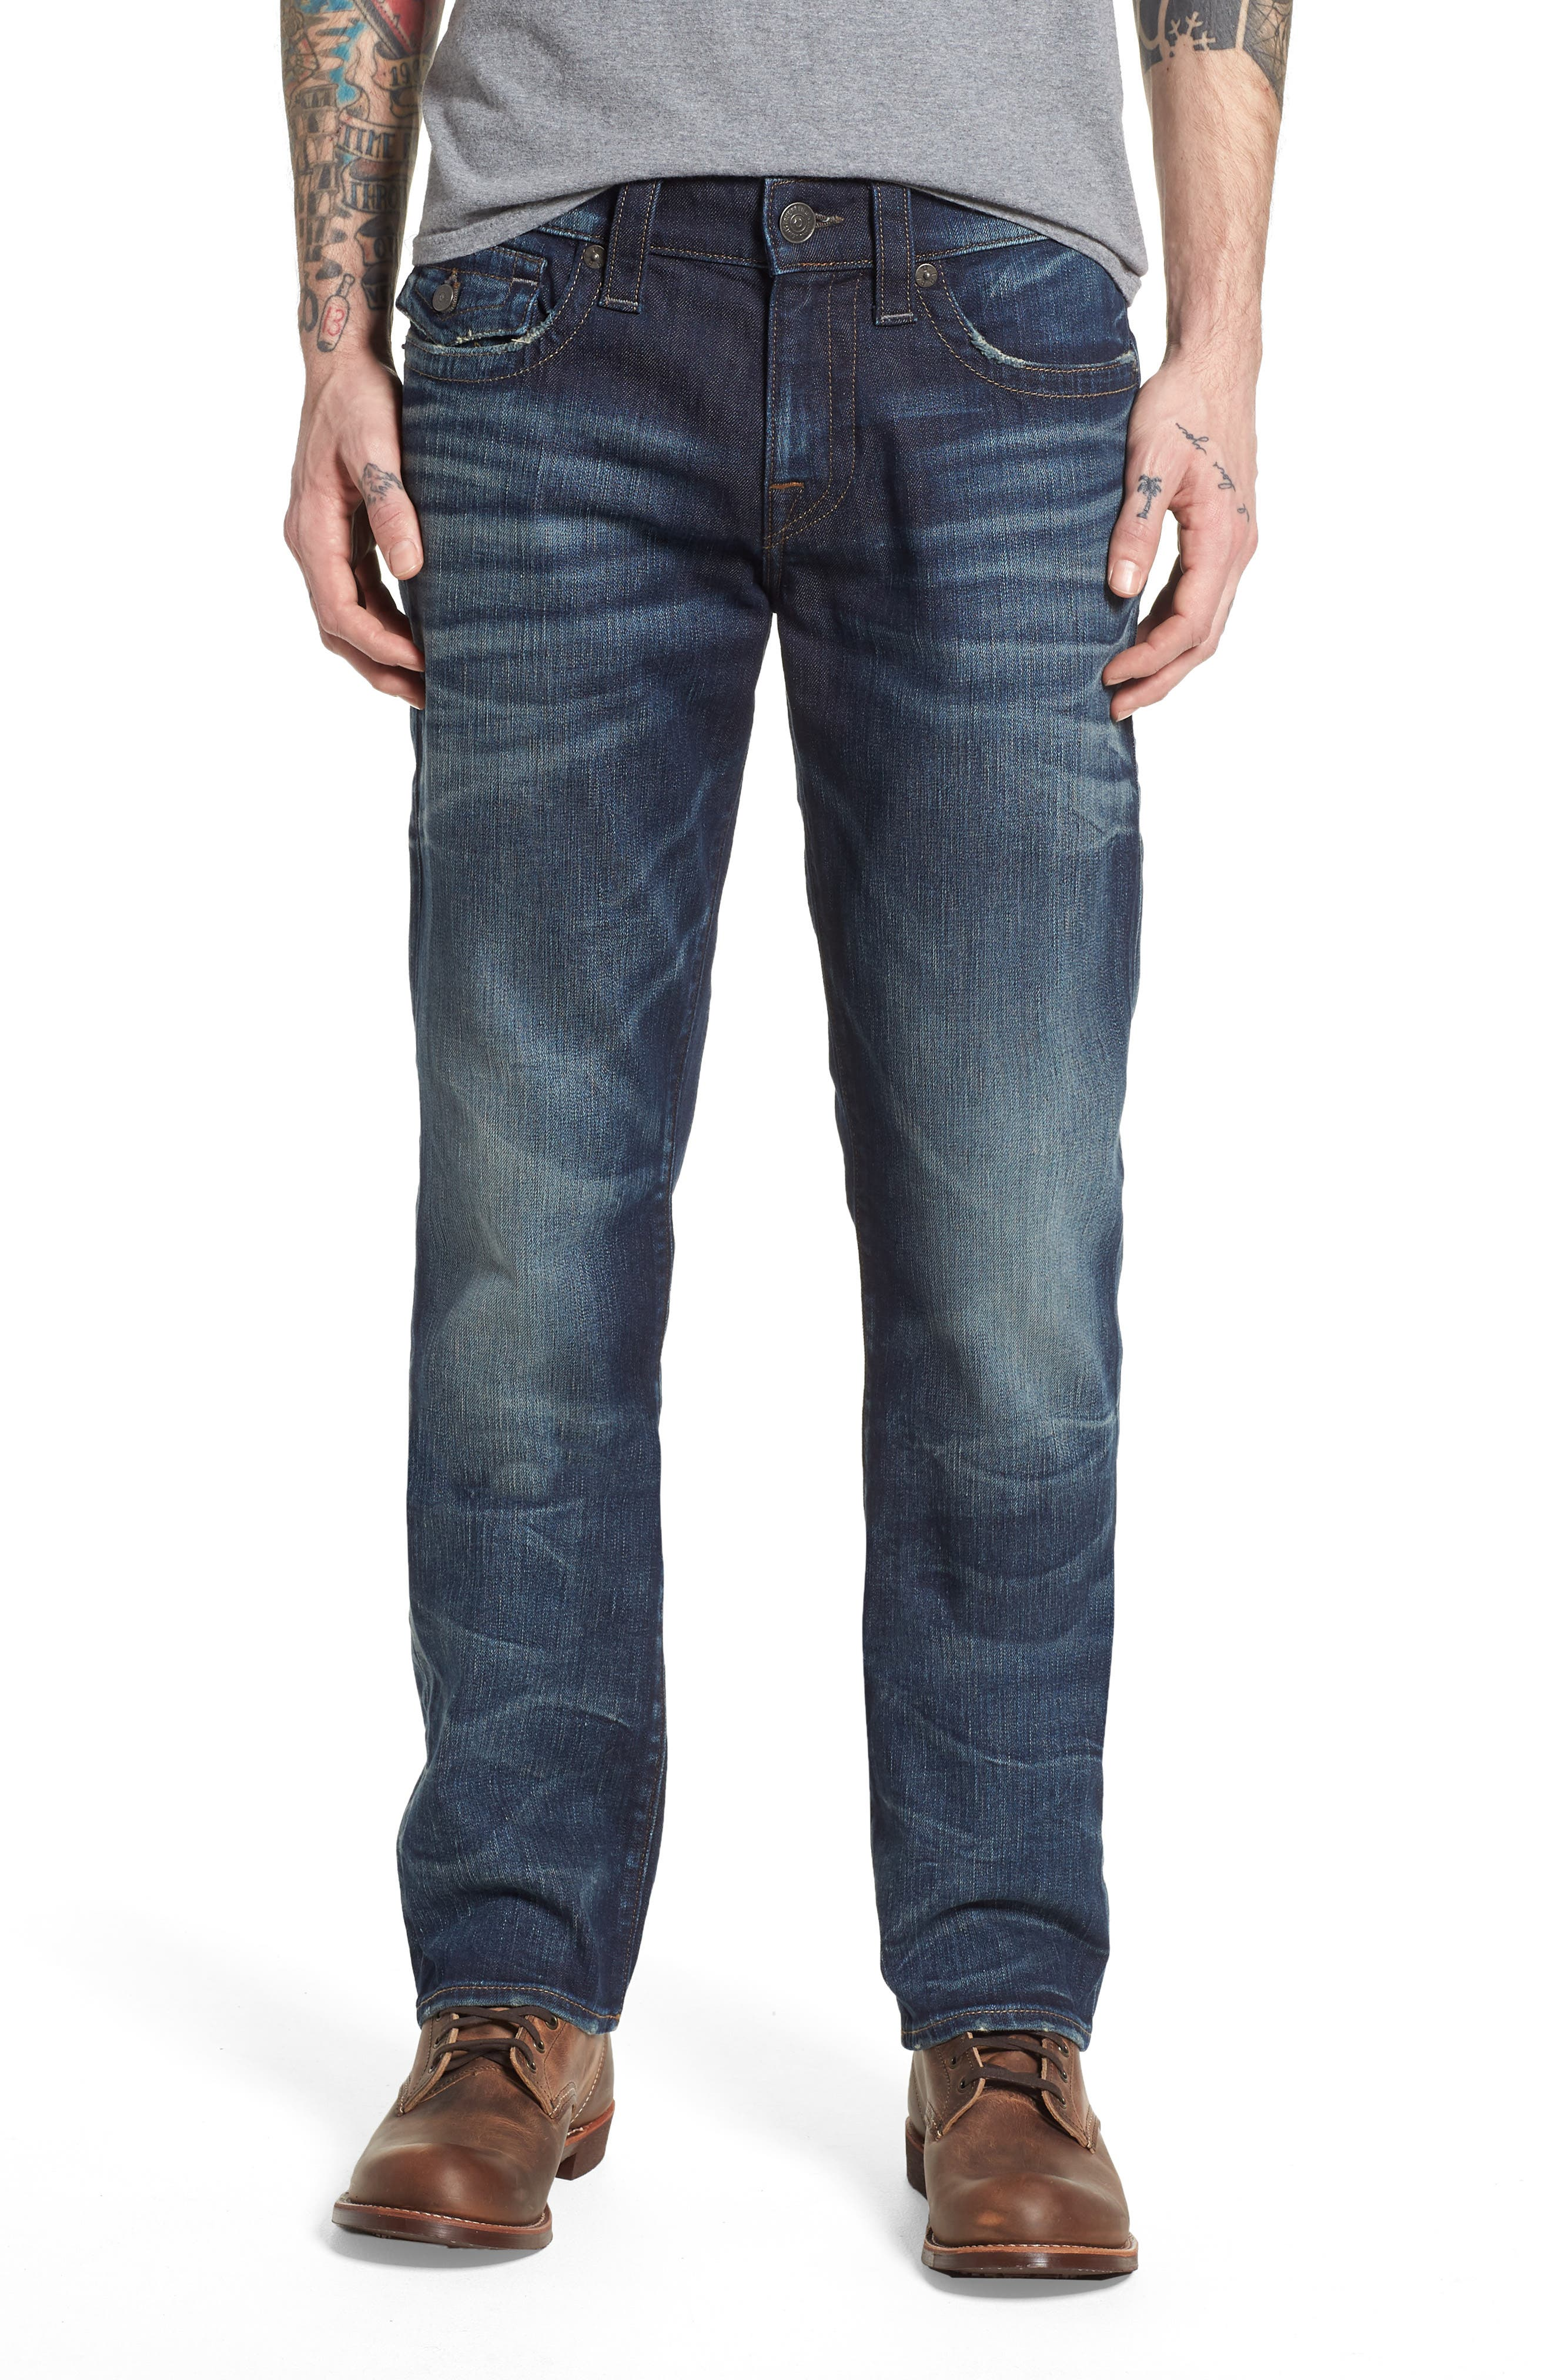 True Religion Brand Jeans Ricky Relaxed Fit Jeans (Combat Blues)